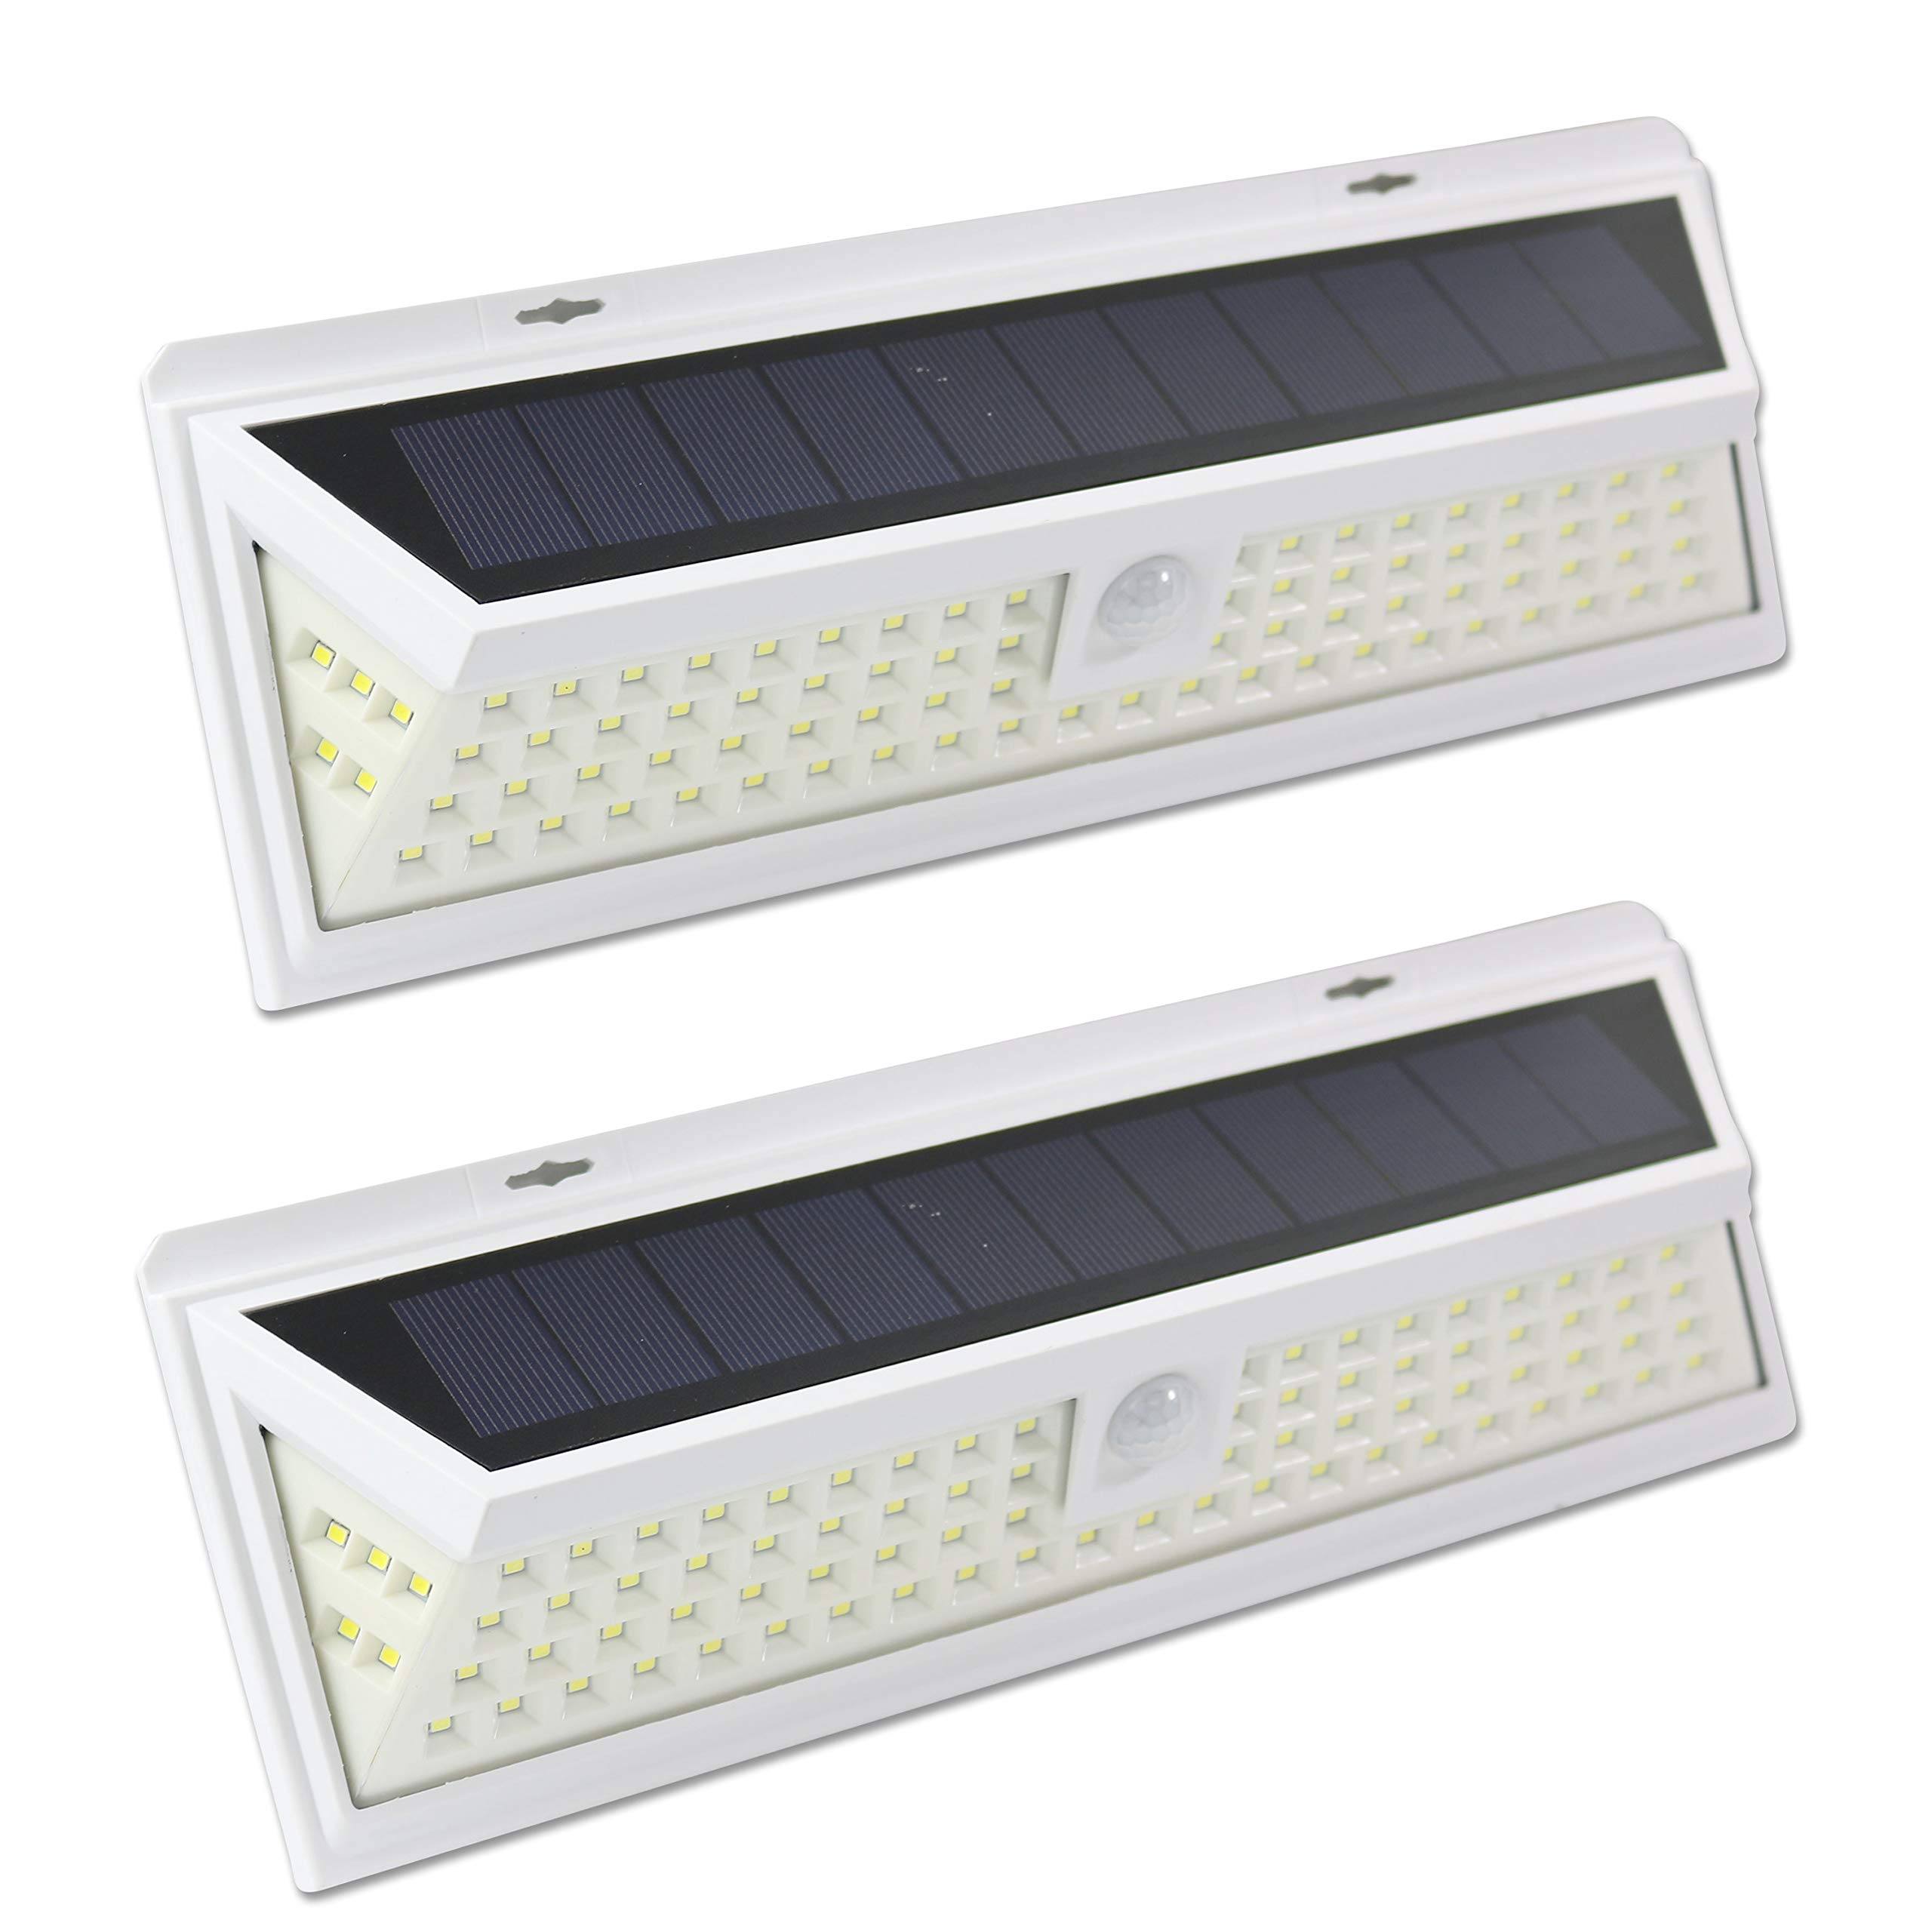 Leisure LED 86 LED Wall Solar Light Outdoor Security Lighting Nightlight with Motion Sensor Detector for Garden Back Door Step Stair Deck Yard Driveway RV Trailer Motor-Home (White, 2-Pack 86-LED)